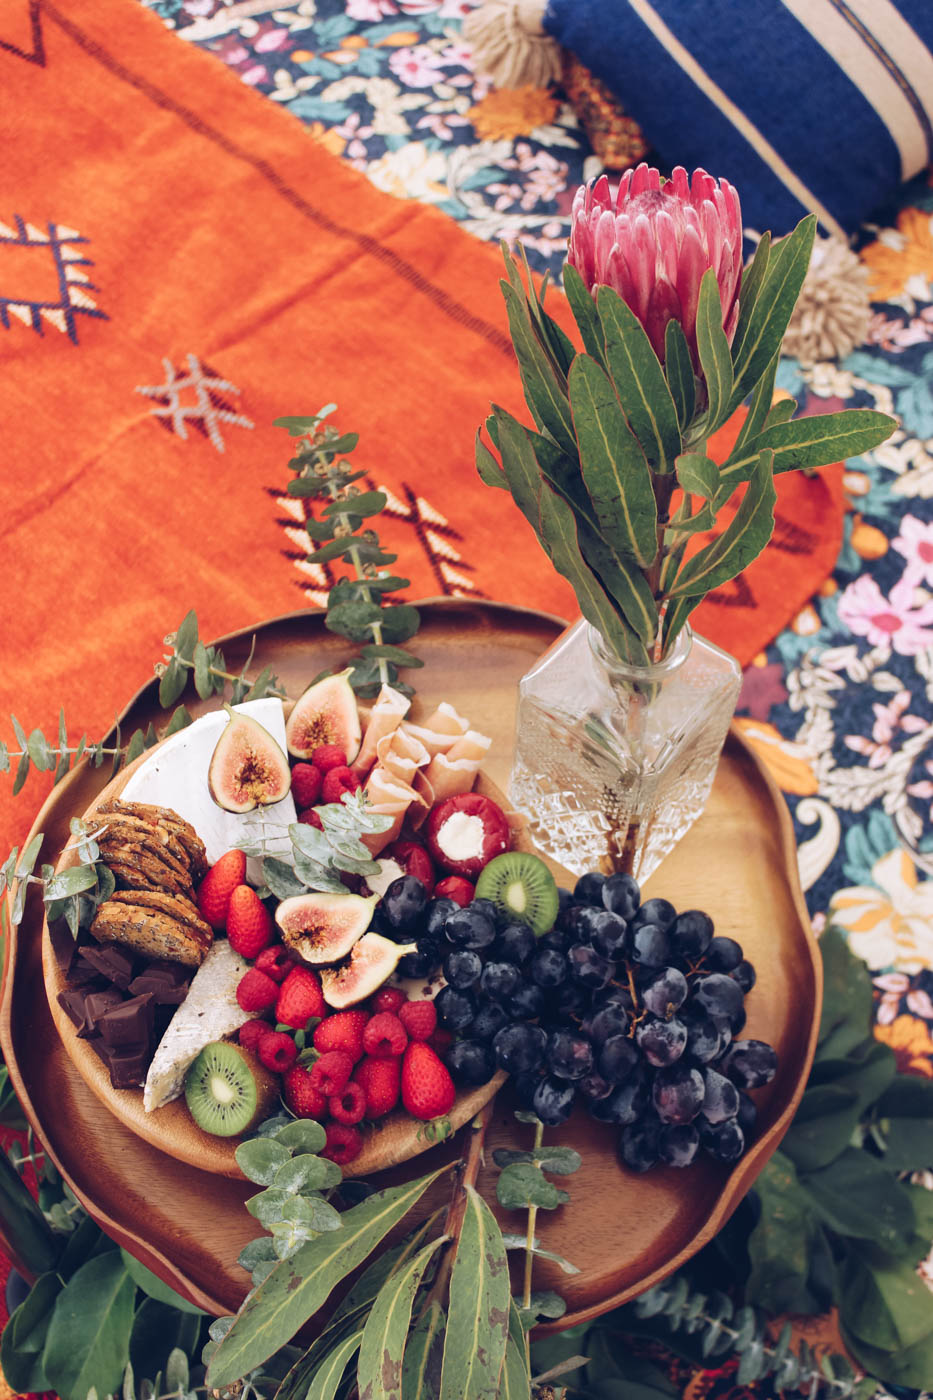 the_Collection_co_grazing_table_cairns_weddings_catering_grazing_platter_hire_pop_up_picnic_bell_tent_event_hire_styling-3-2.jpg